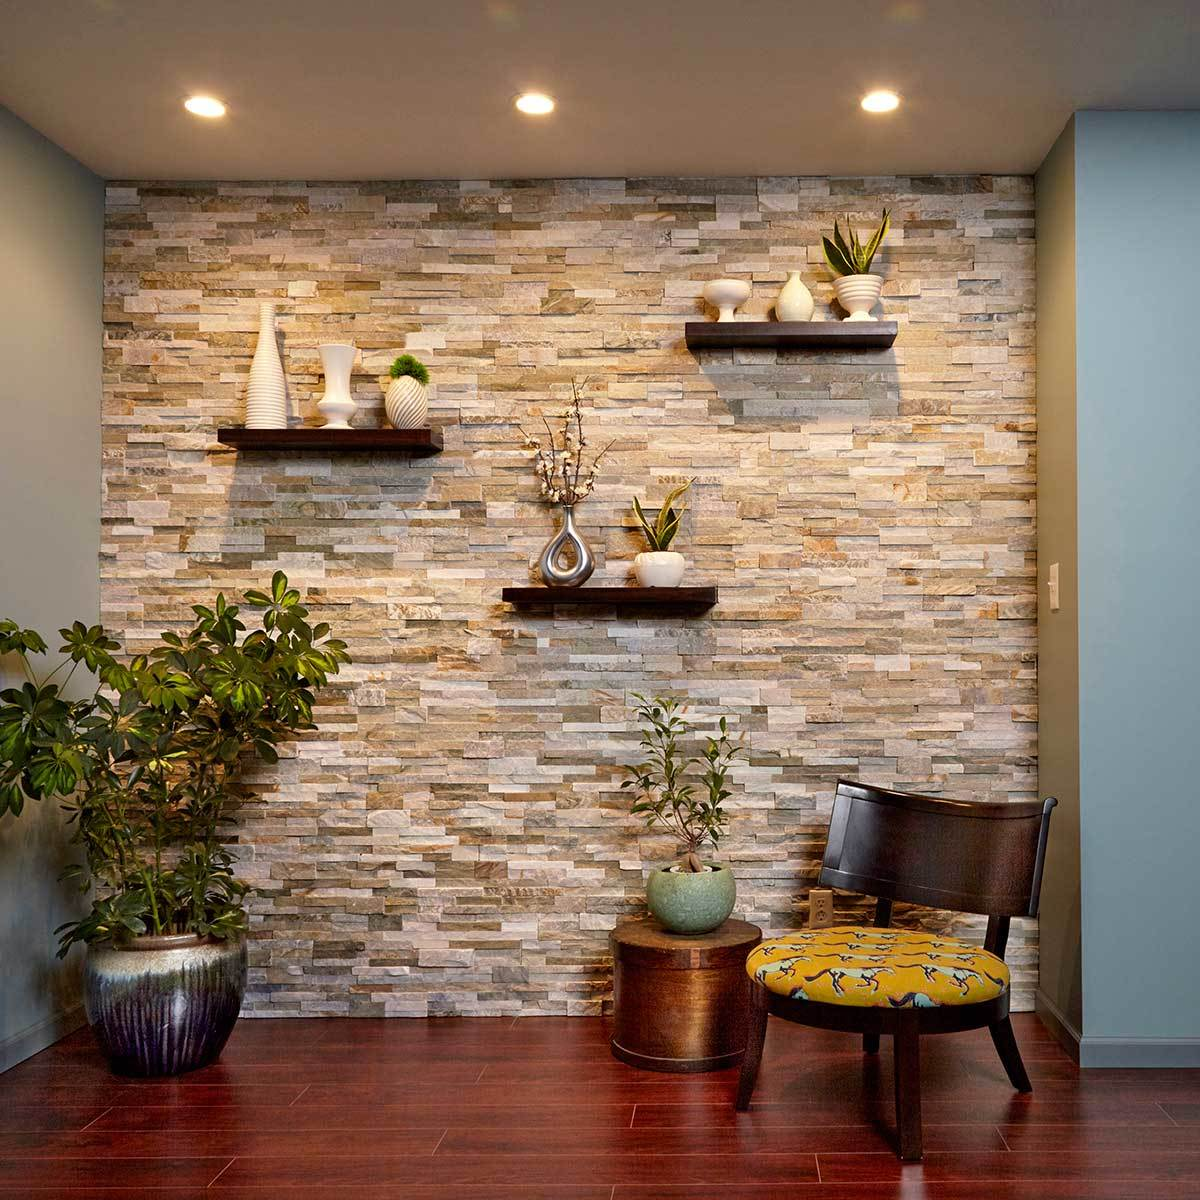 Accent Stone Wall 35 43 Accent Wall Ideas To Make Your Home More Stunning